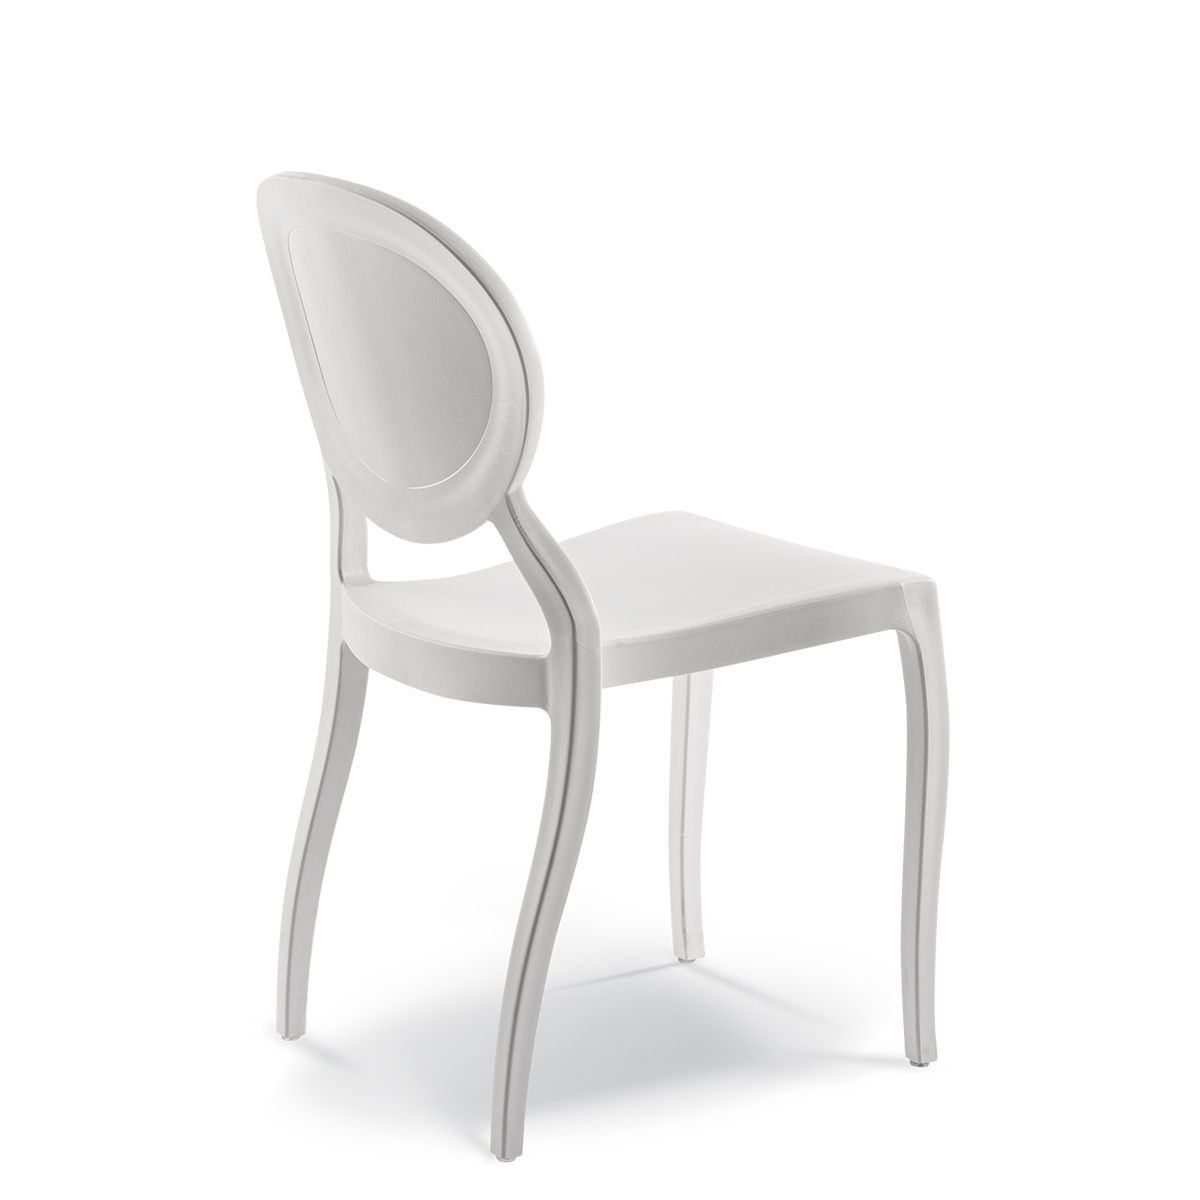 ZING CHAIR